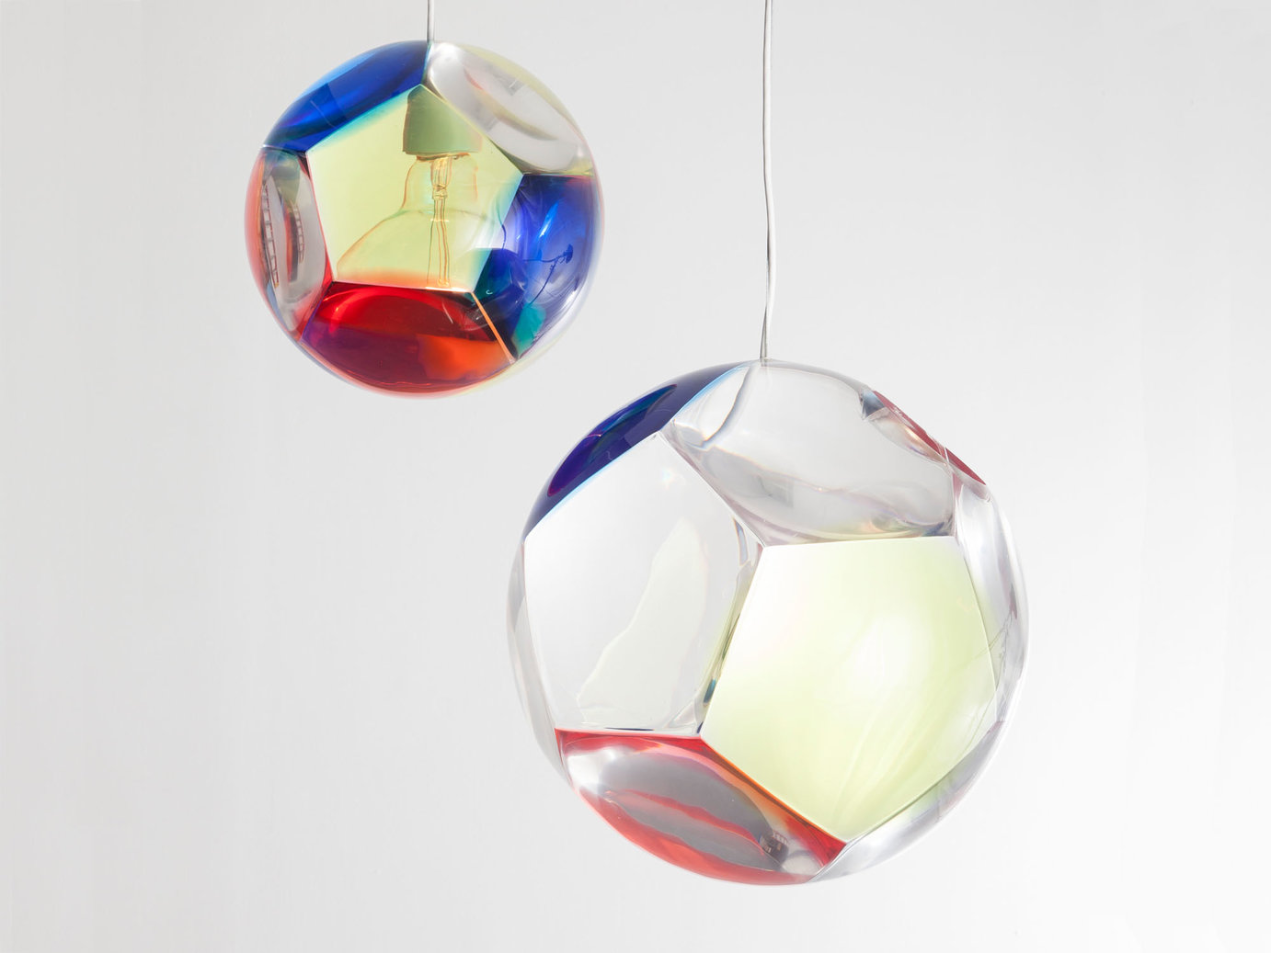 """Medium """"Dodecahedron"""" chandelier and optical instrument with three yellow lenses, three blue lenses, three red lenses, and three clear lenses, in poured polyurethane resin. Edition 1 of 9 with 2 APs. 14"""" D / 35.56cm D."""